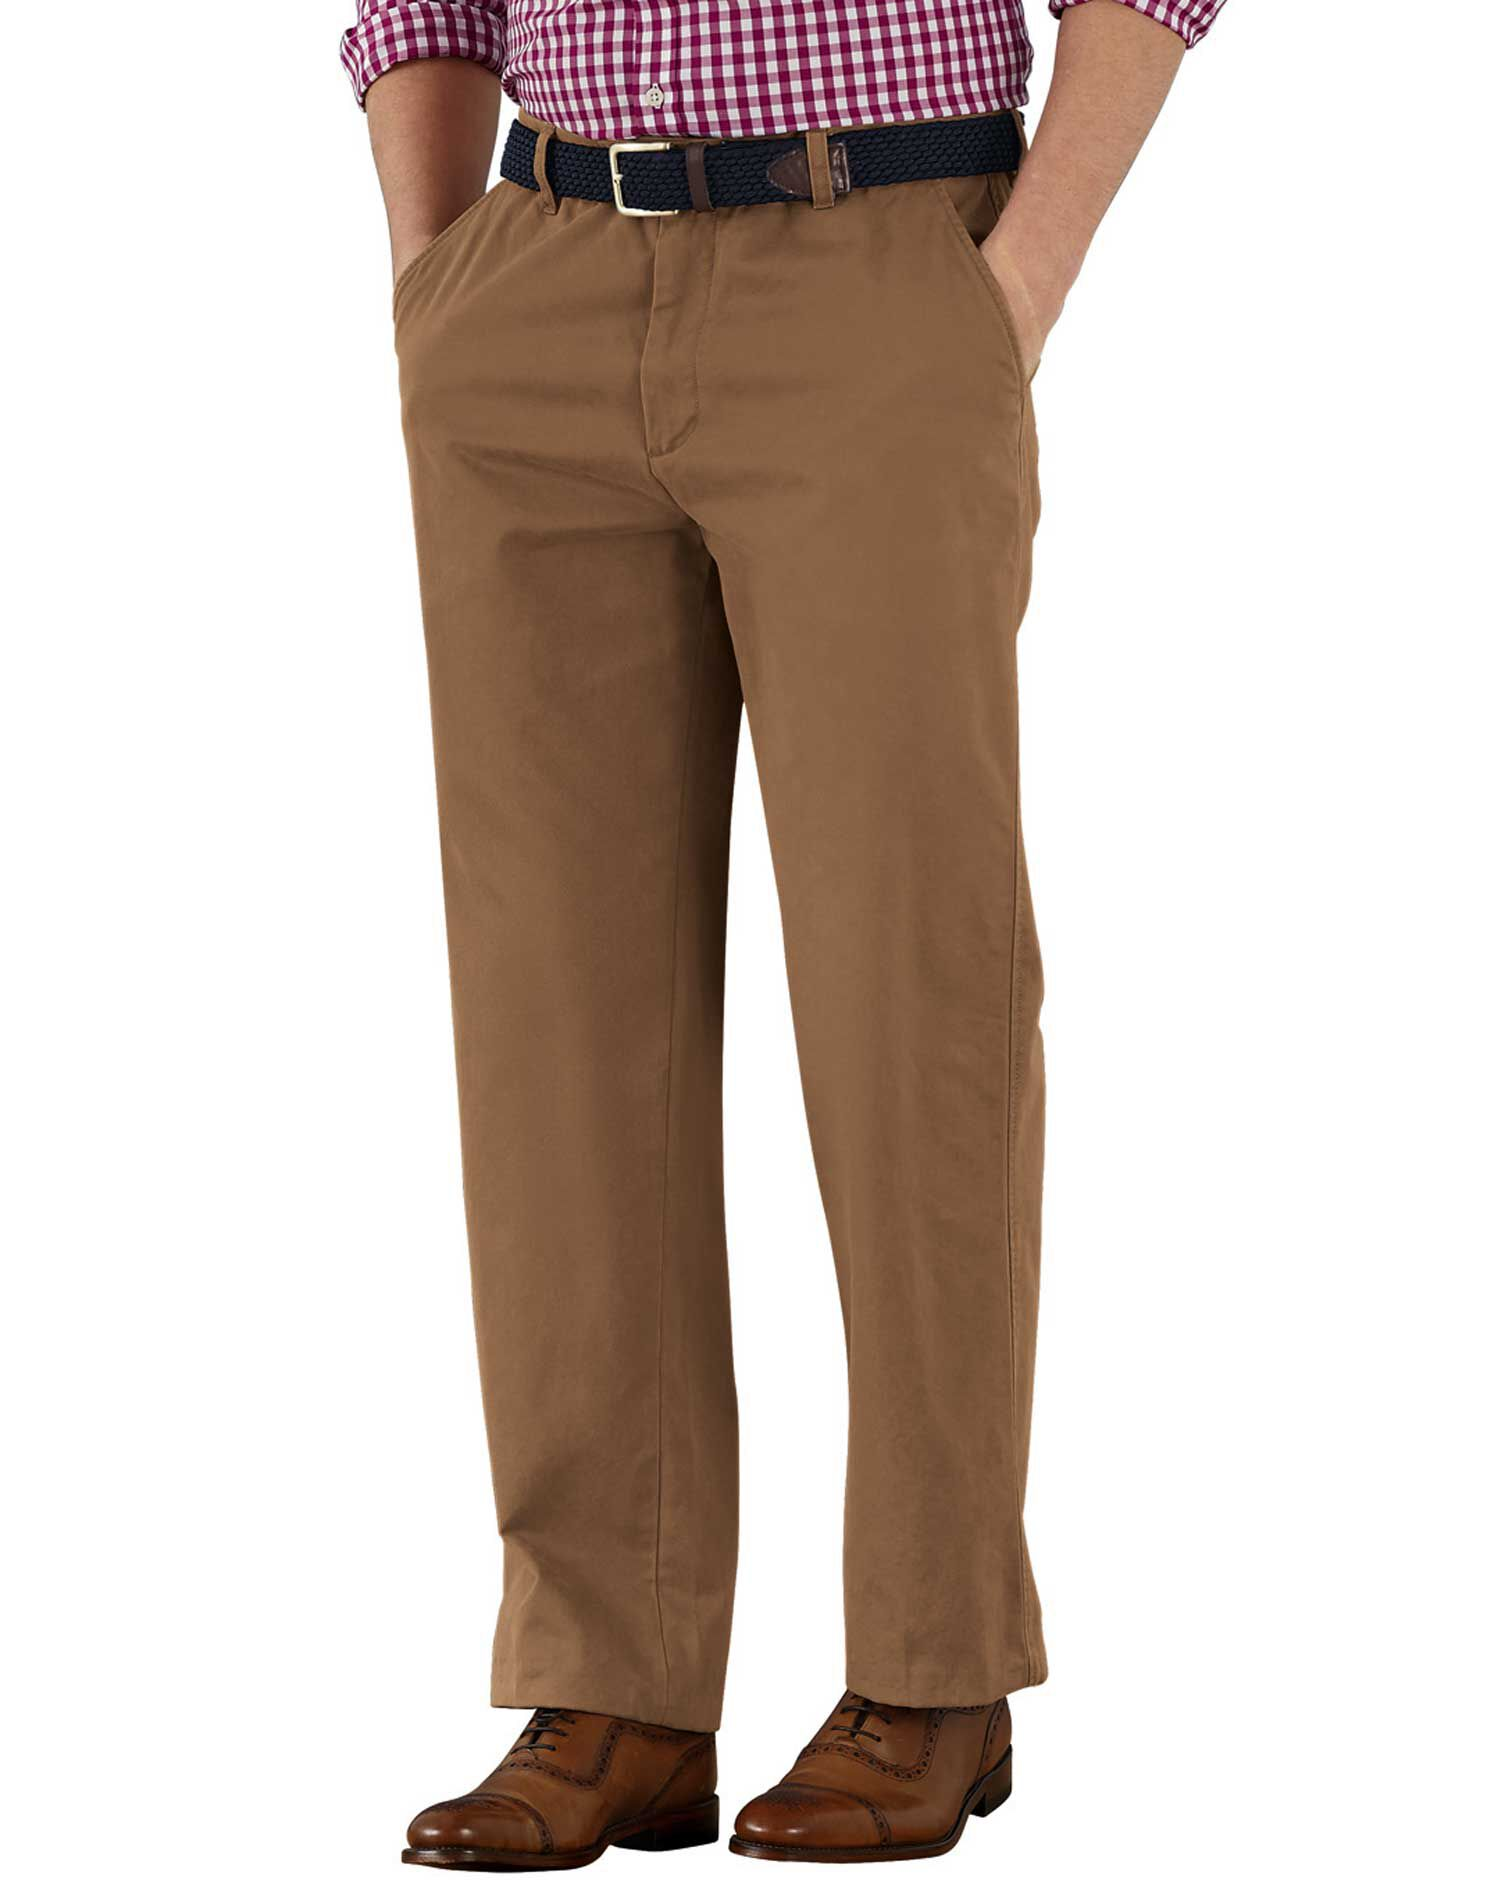 Camel Classic Fit Flat Front Cotton Chino Trousers Size W40 L32 by Charles Tyrwhitt